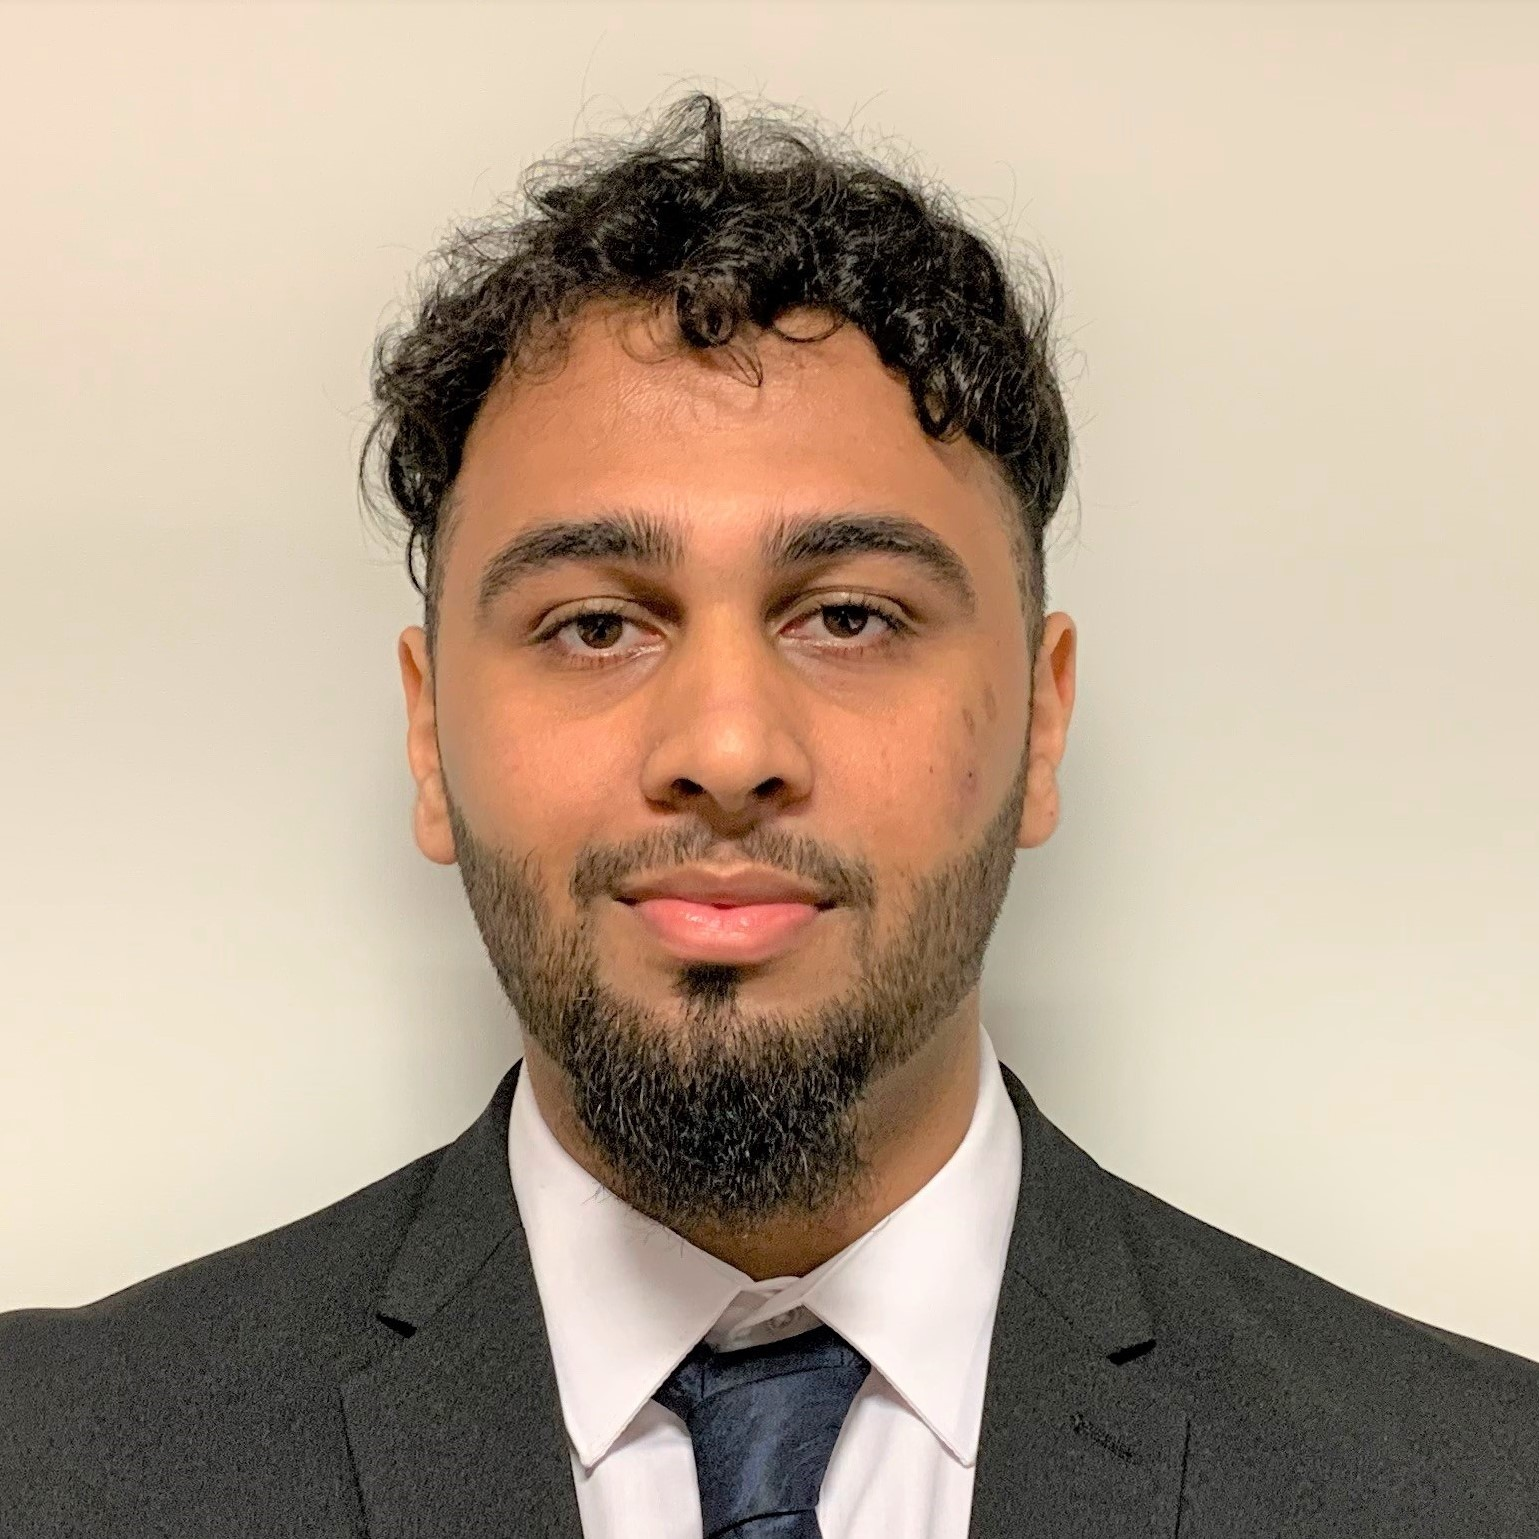 profile picture of suhail ilyas